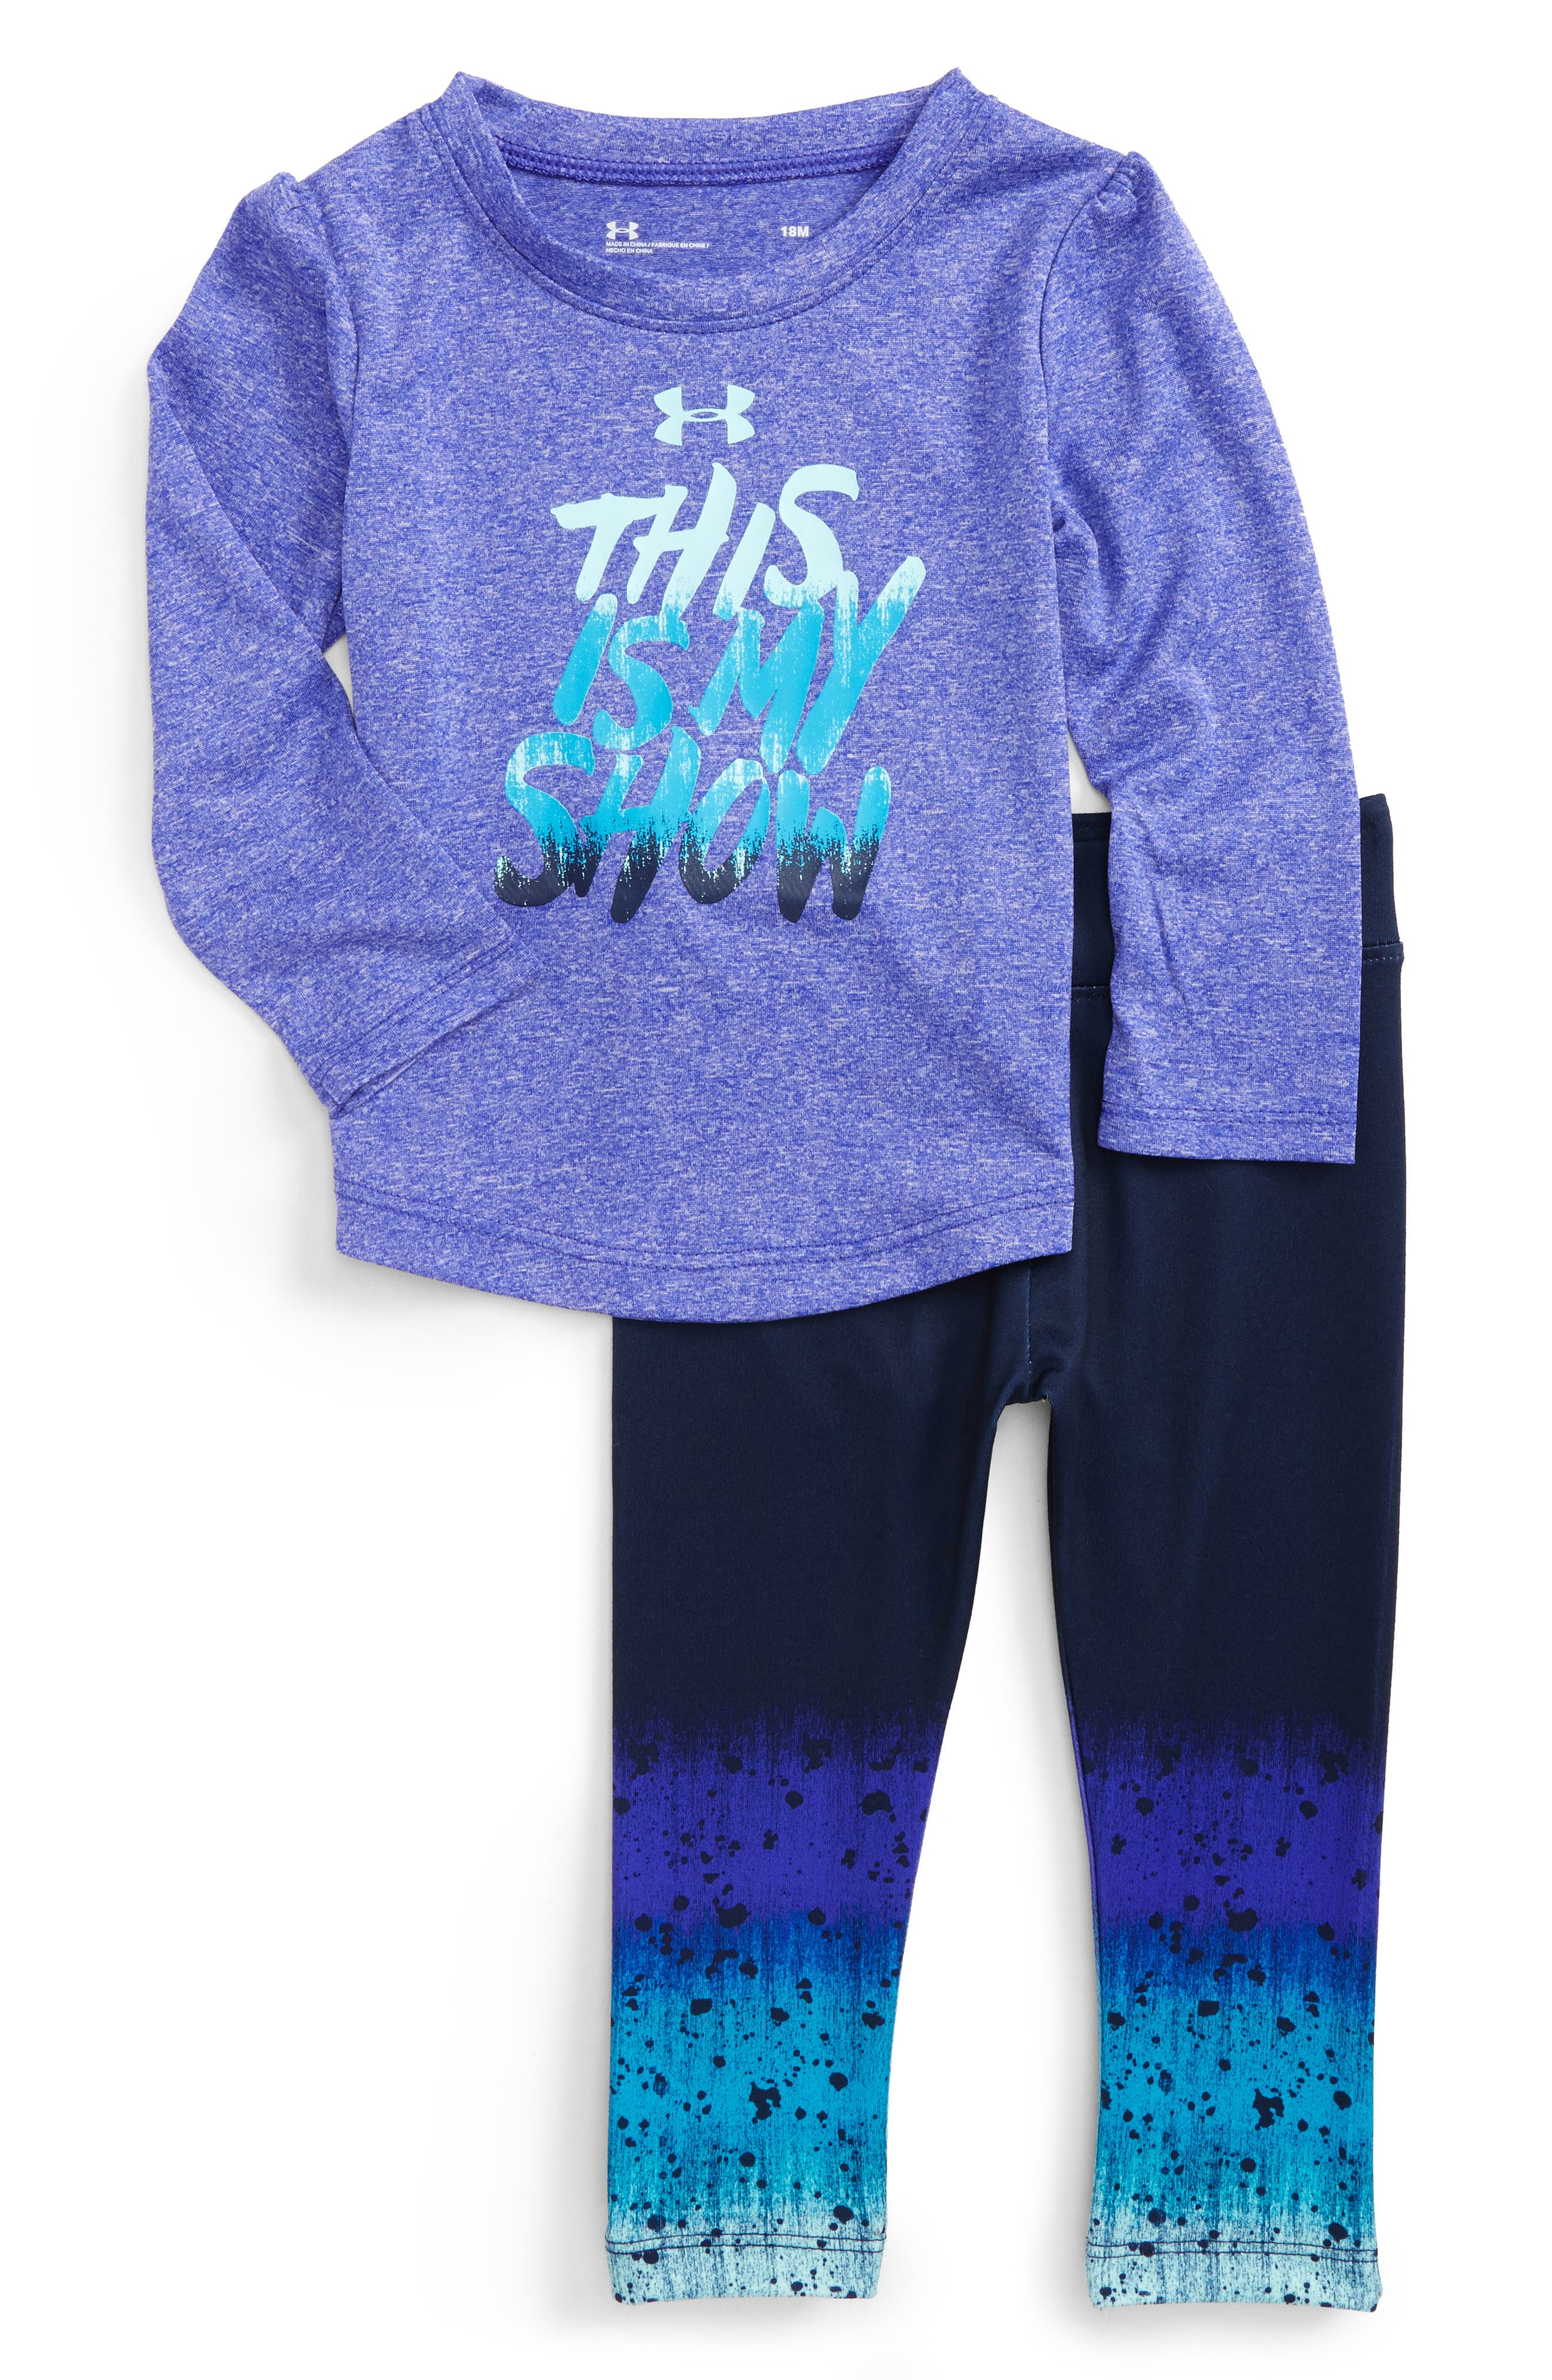 Alternate Image 1 Selected - Under Armour This Is My Show Graphic Tee & Leggings Set (Baby Girls)